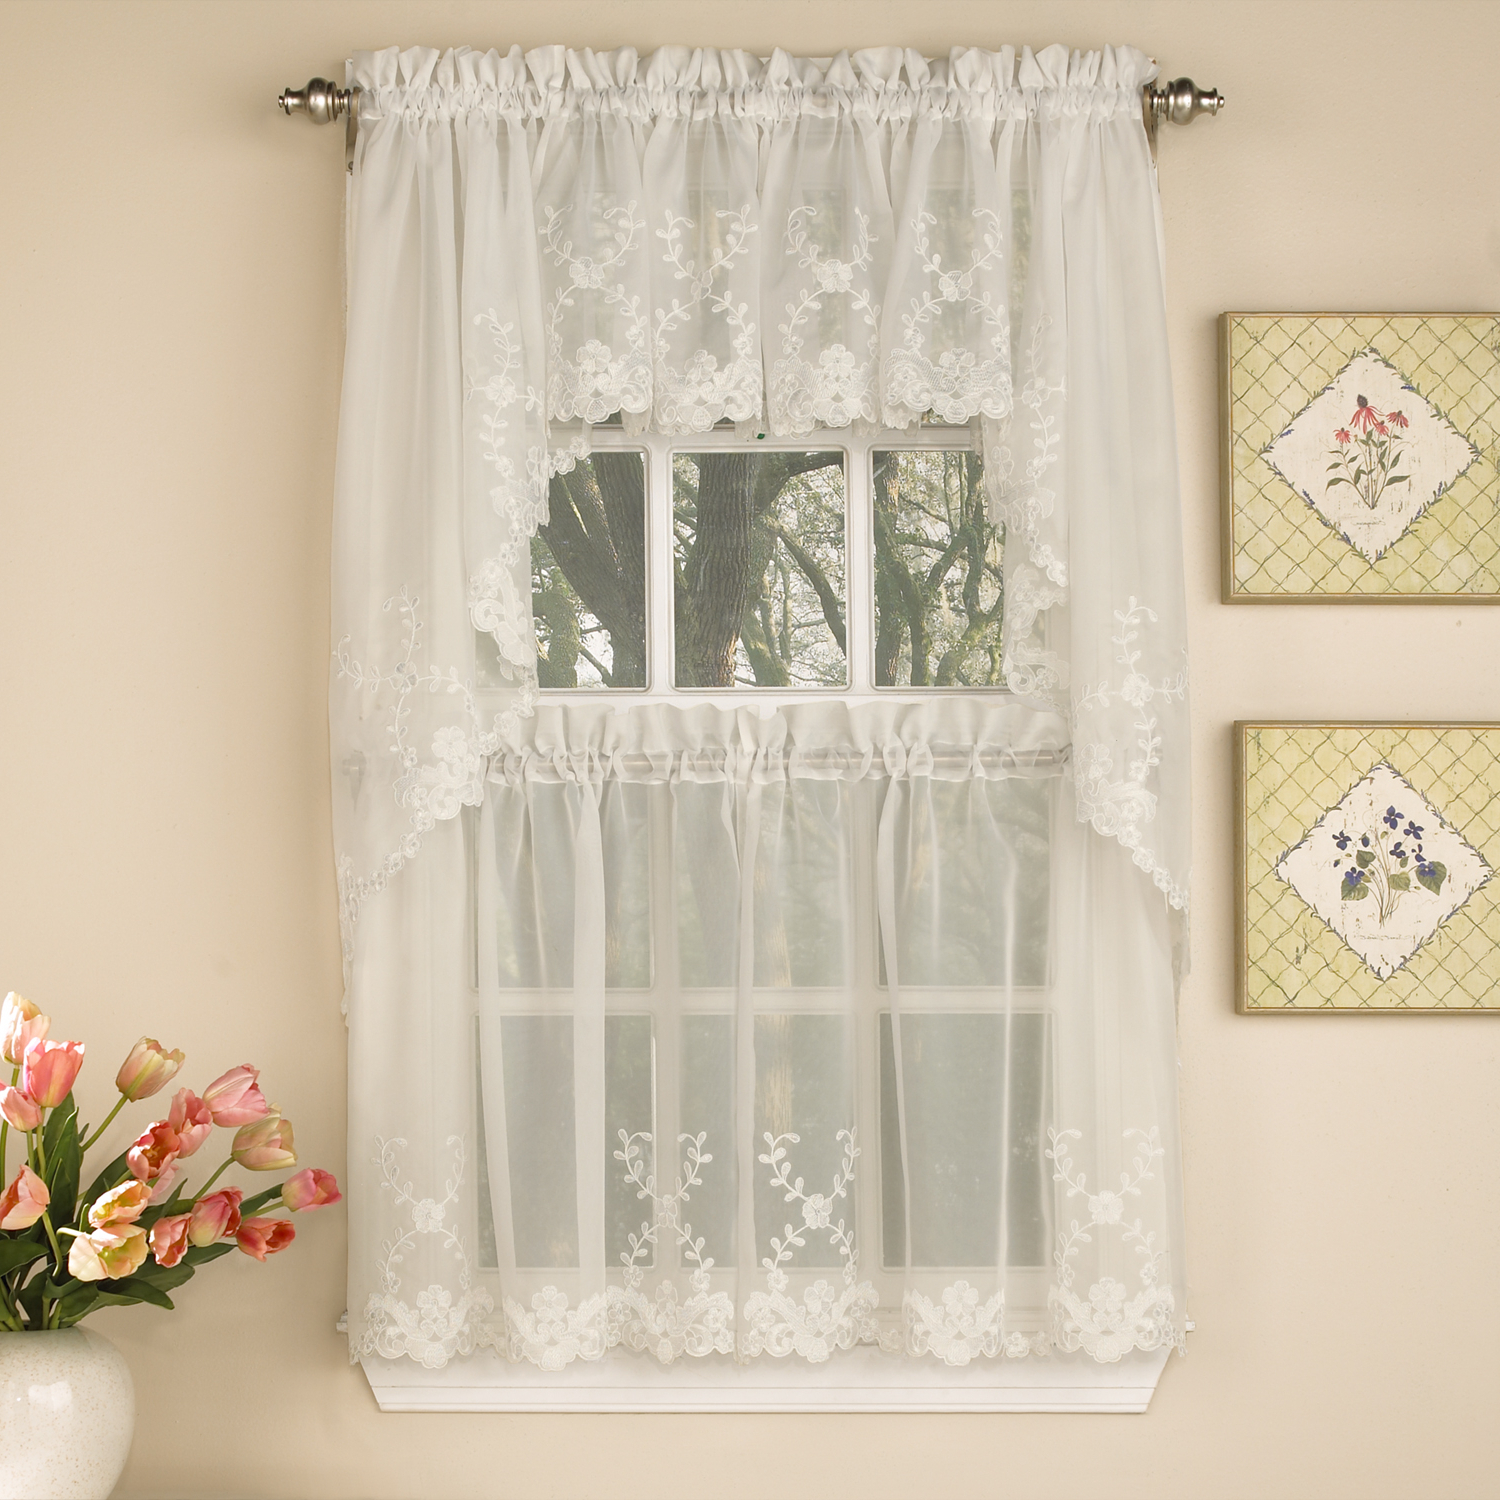 Most Recent Details About Laurel Leaf Sheer Voile Embroidered Ivory Kitchen Curtains  Tier, Valance Or Swag Pertaining To Scroll Leaf 3 Piece Curtain Tier And Valance Sets (View 6 of 20)